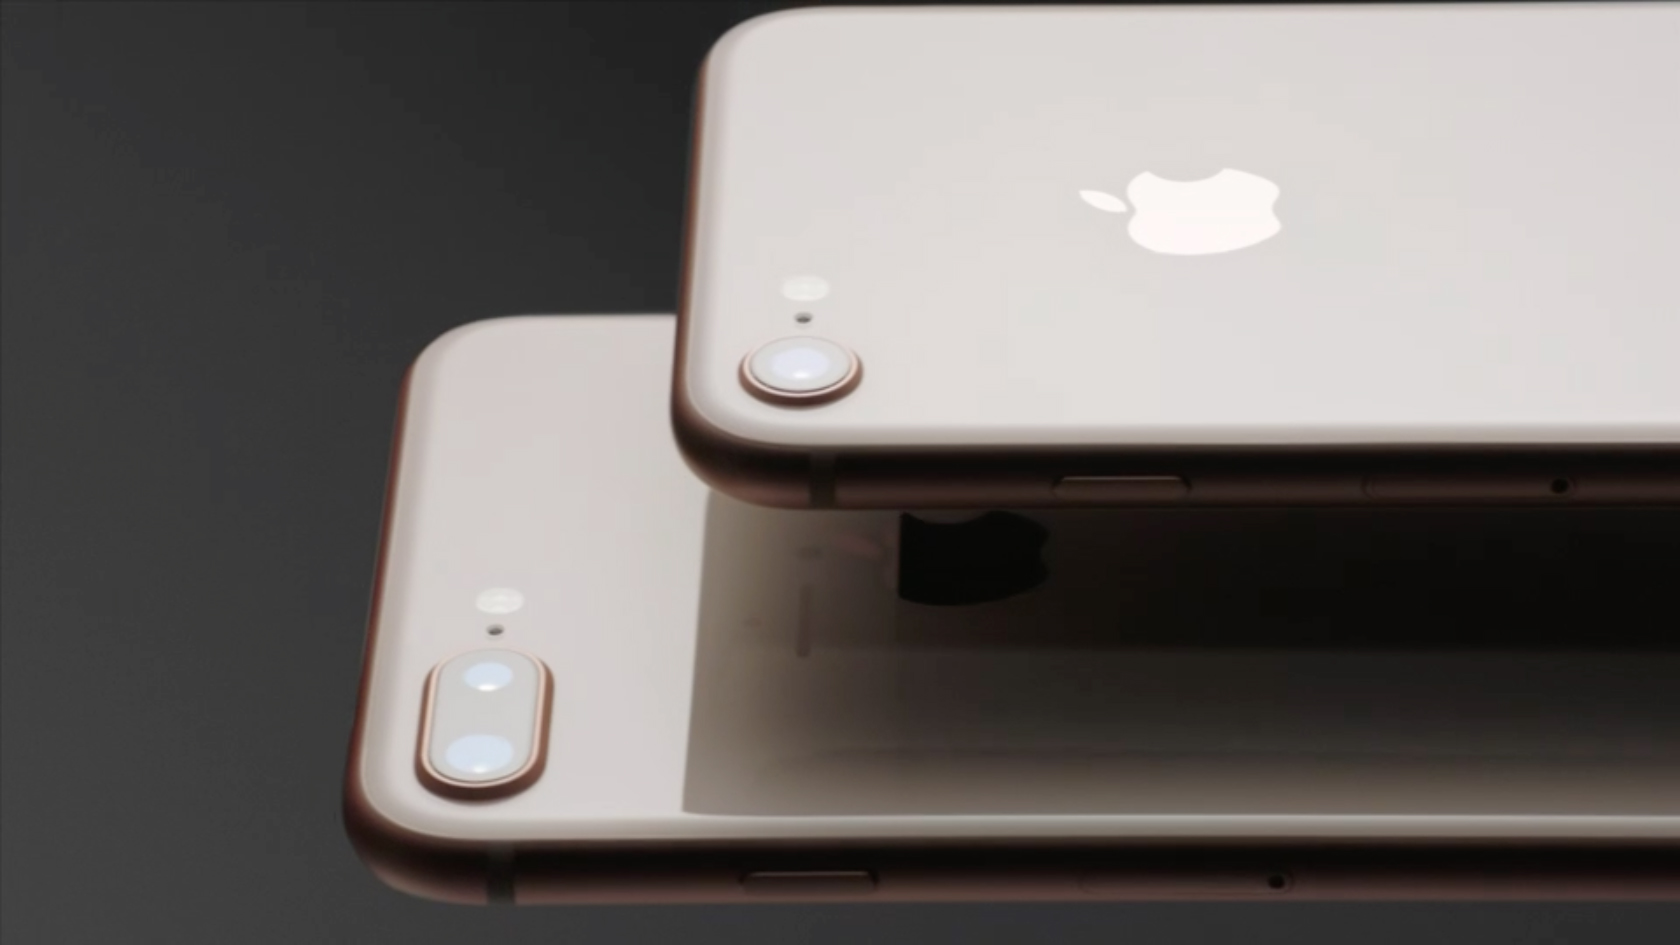 iPhone 8 Plus vs iPhone 7 Plus: the big differences revealed